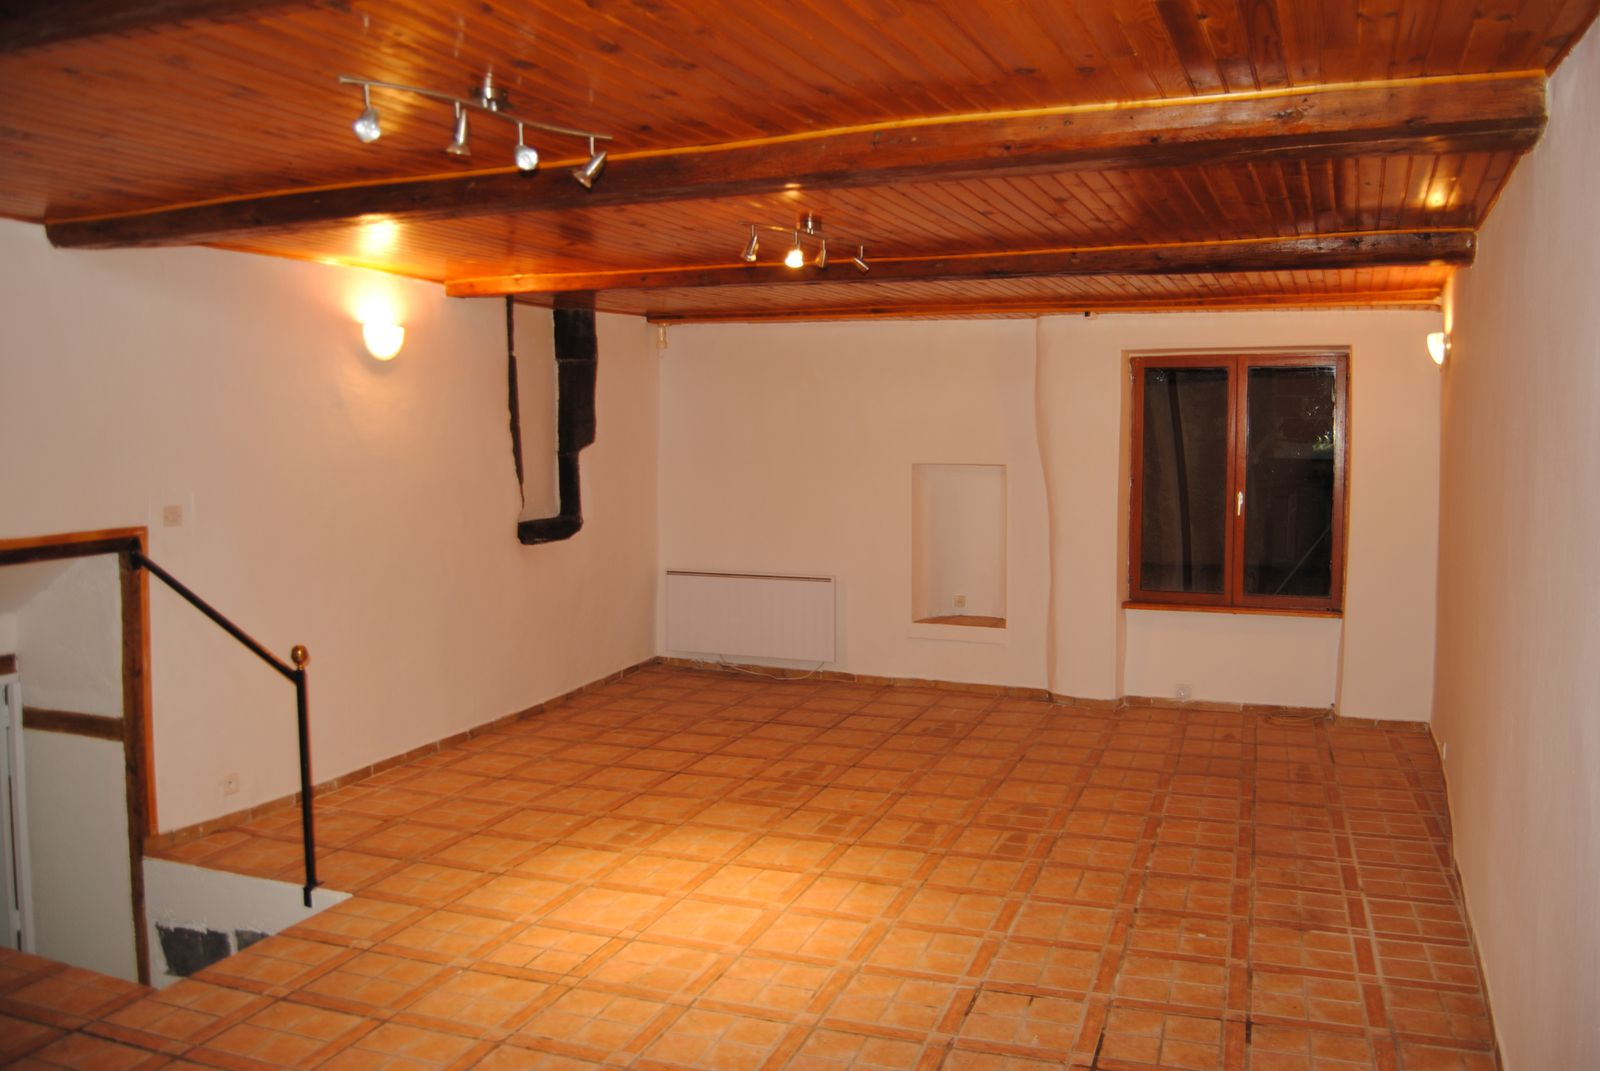 Salon 35m2 niveau 1 - Salon carrelage blanc ...